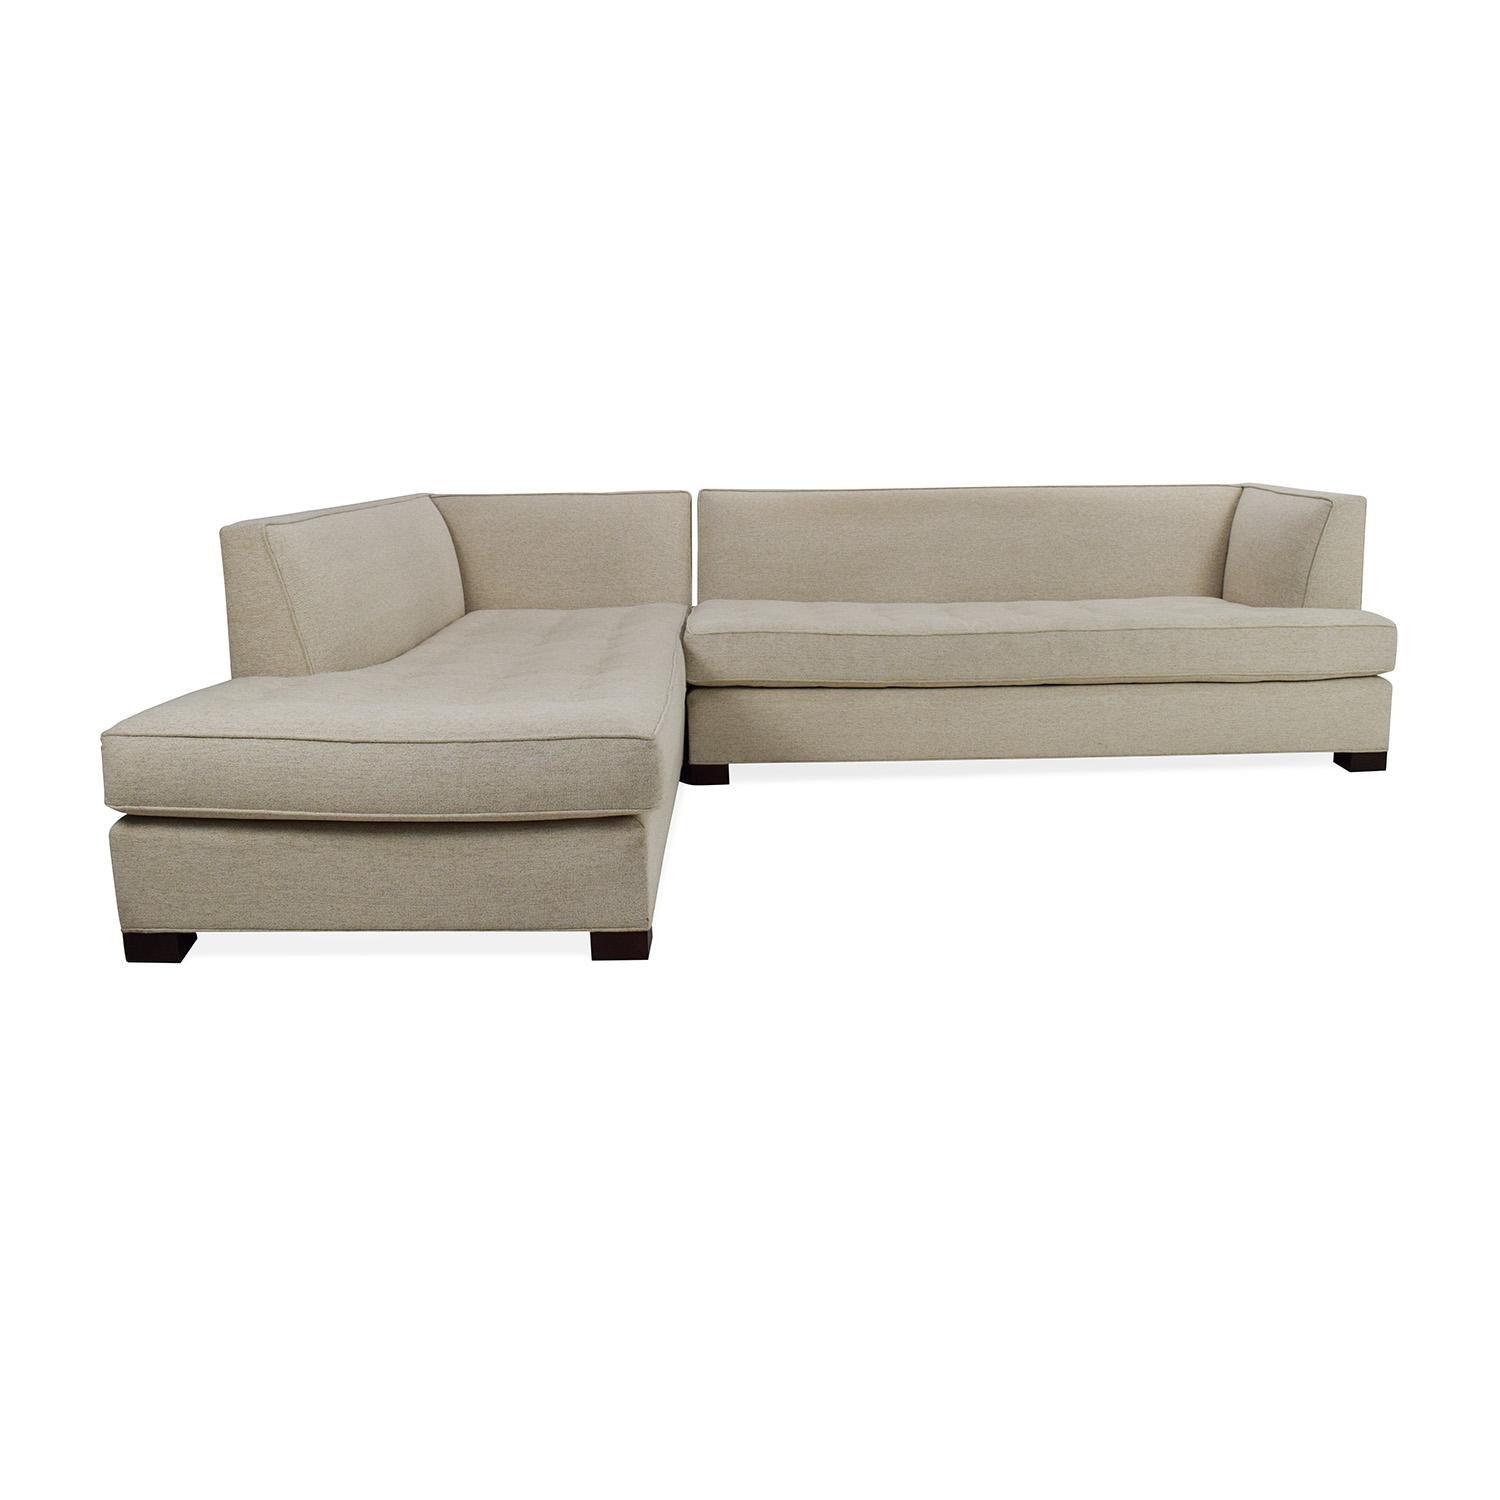 Furniture Home : Outstanding Mitchell Gold Clifton Sectional Sofa With Mitchell Gold Sofa Slipcovers (View 19 of 20)